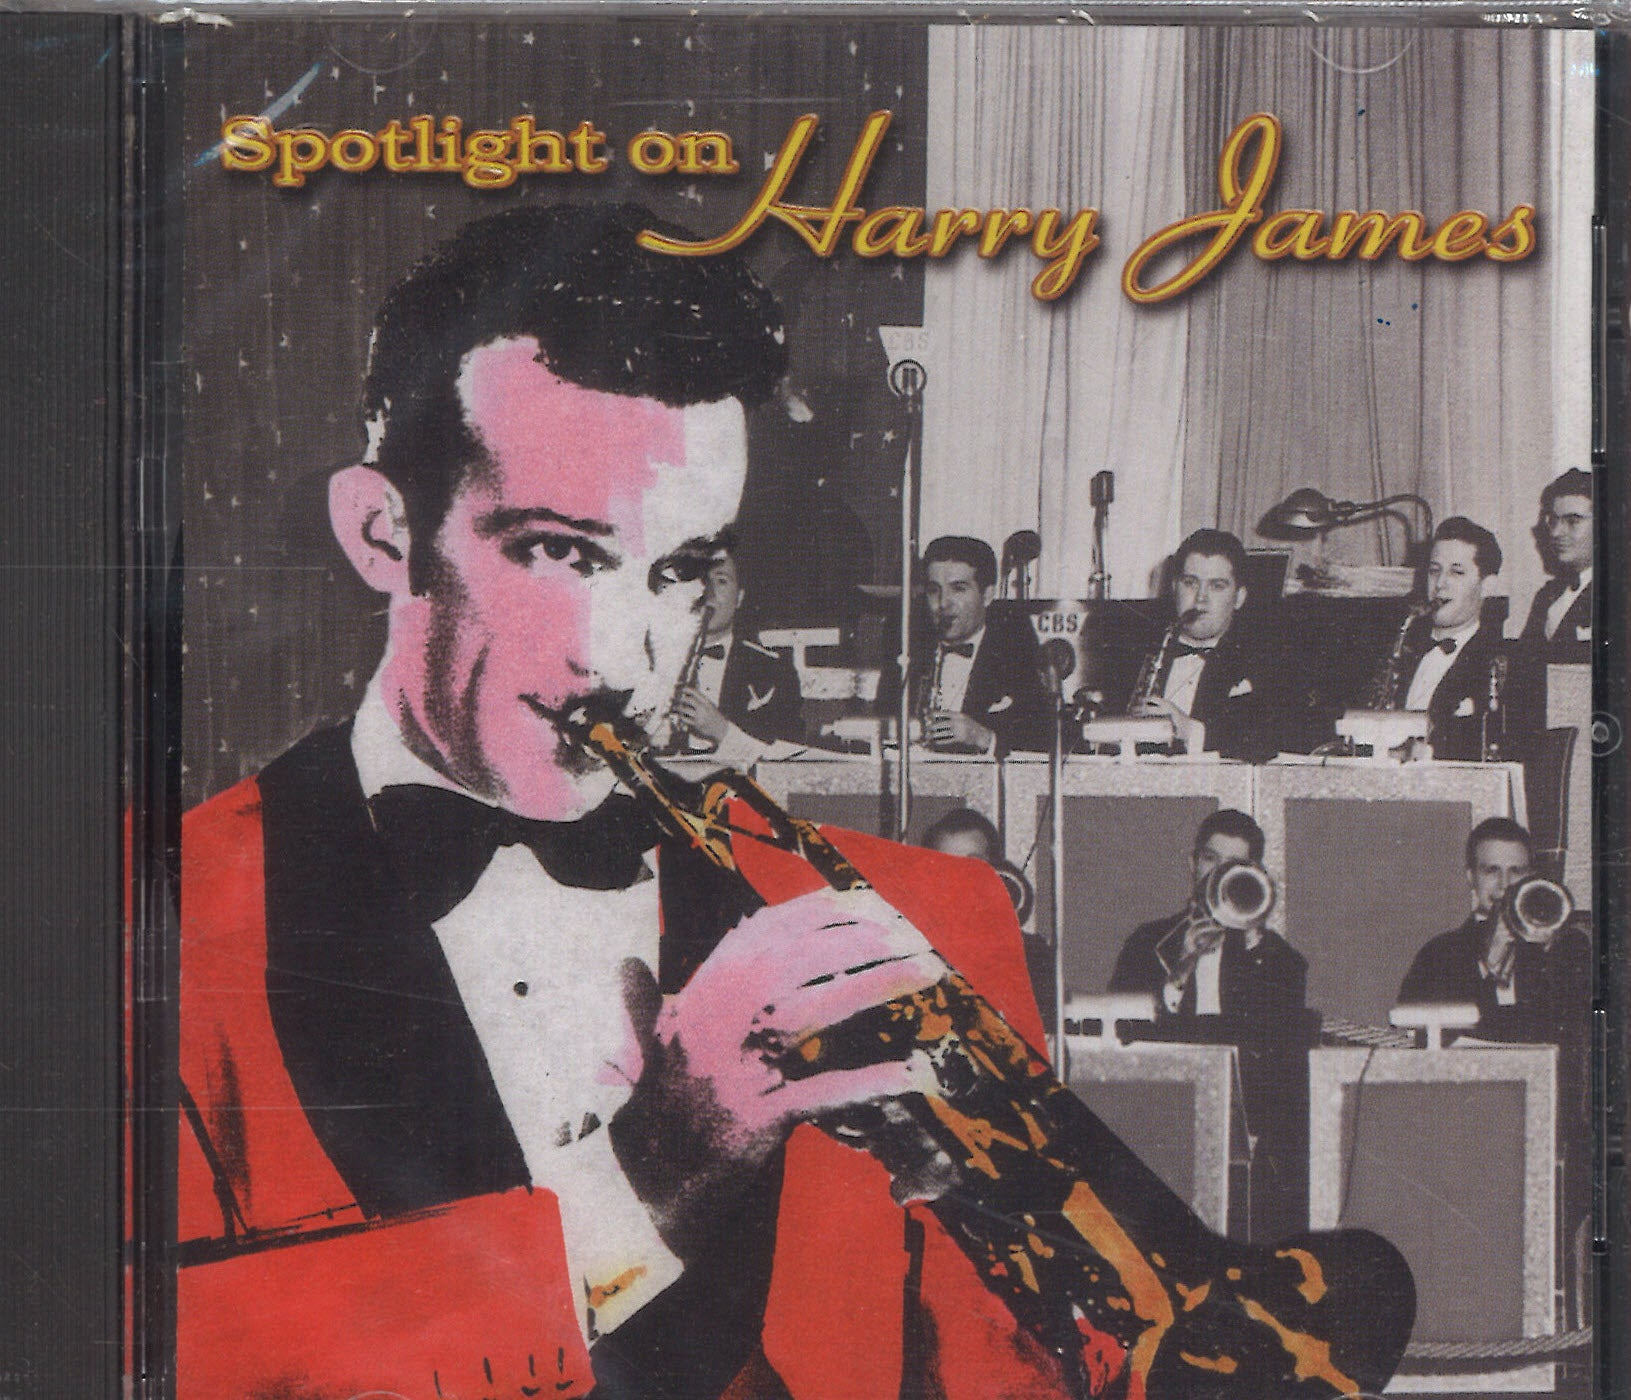 Harry James Spotlight On